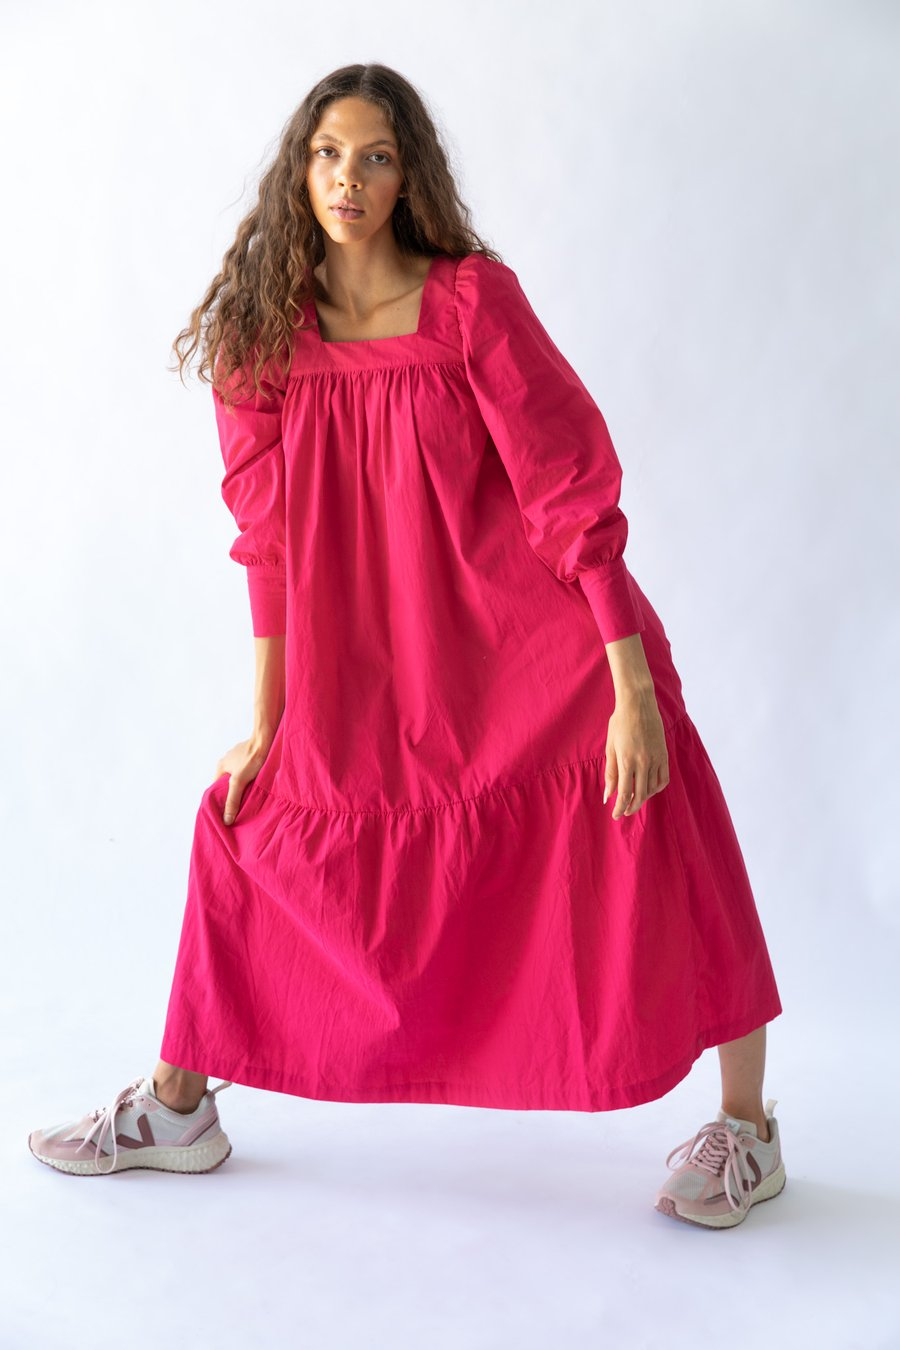 Nice Martin Tao Dress in Tao Dress in Fuchsia Pink